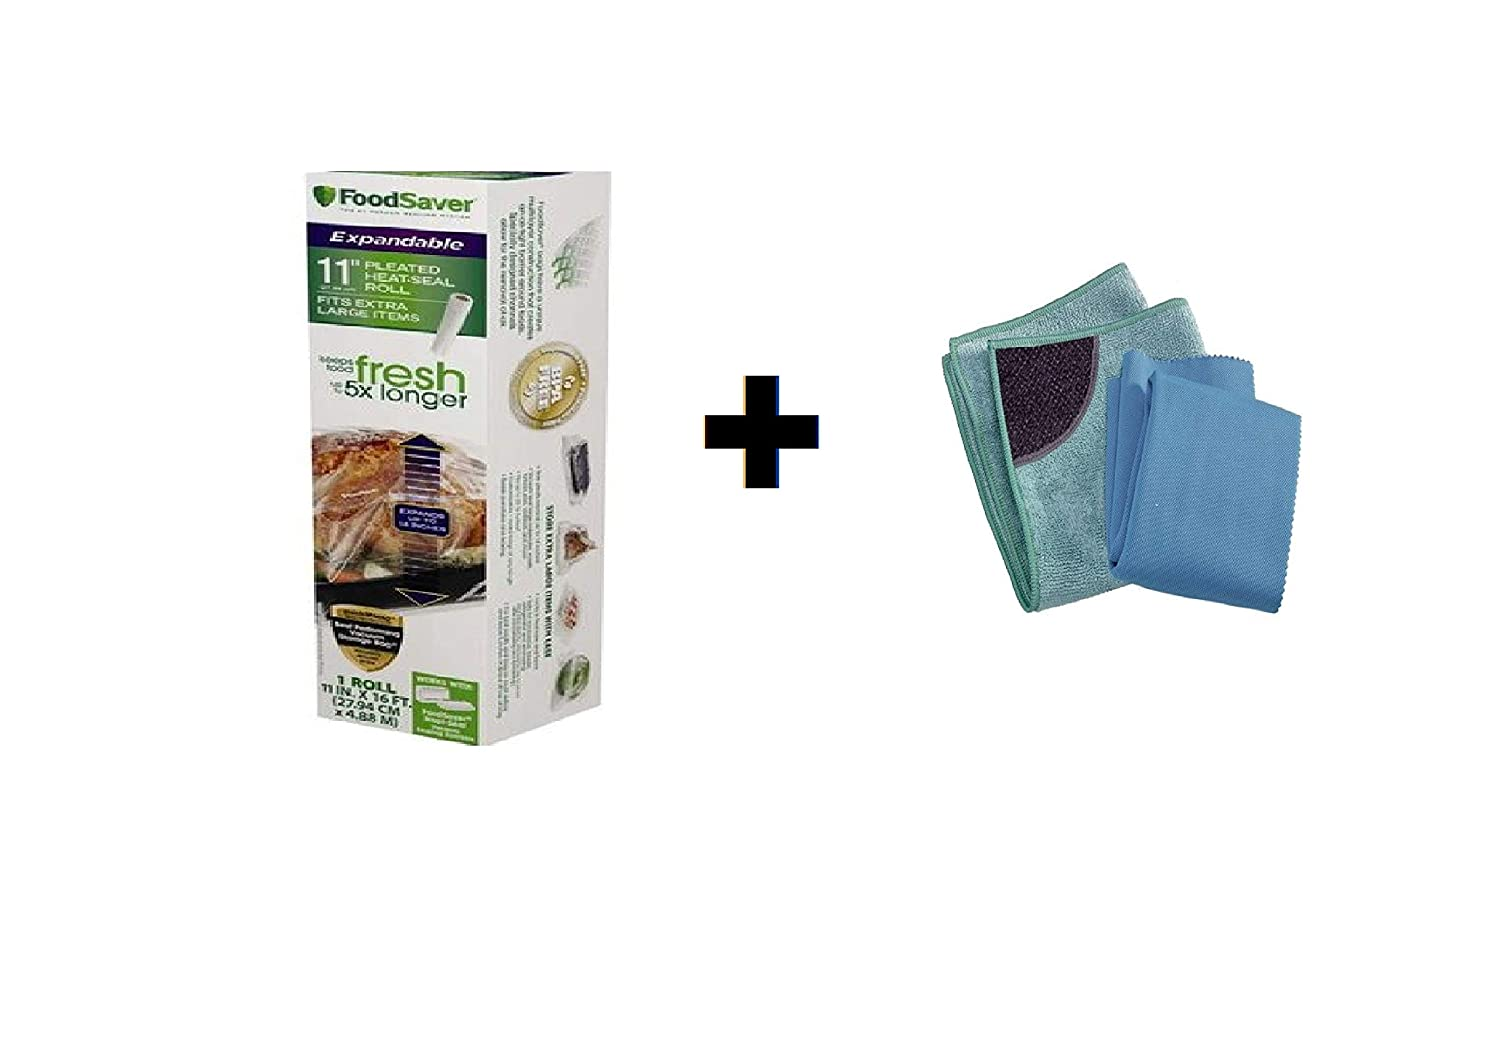 Amazon.com: FoodSaver 11 in x 16 ft Expandable Heat-Seal ...